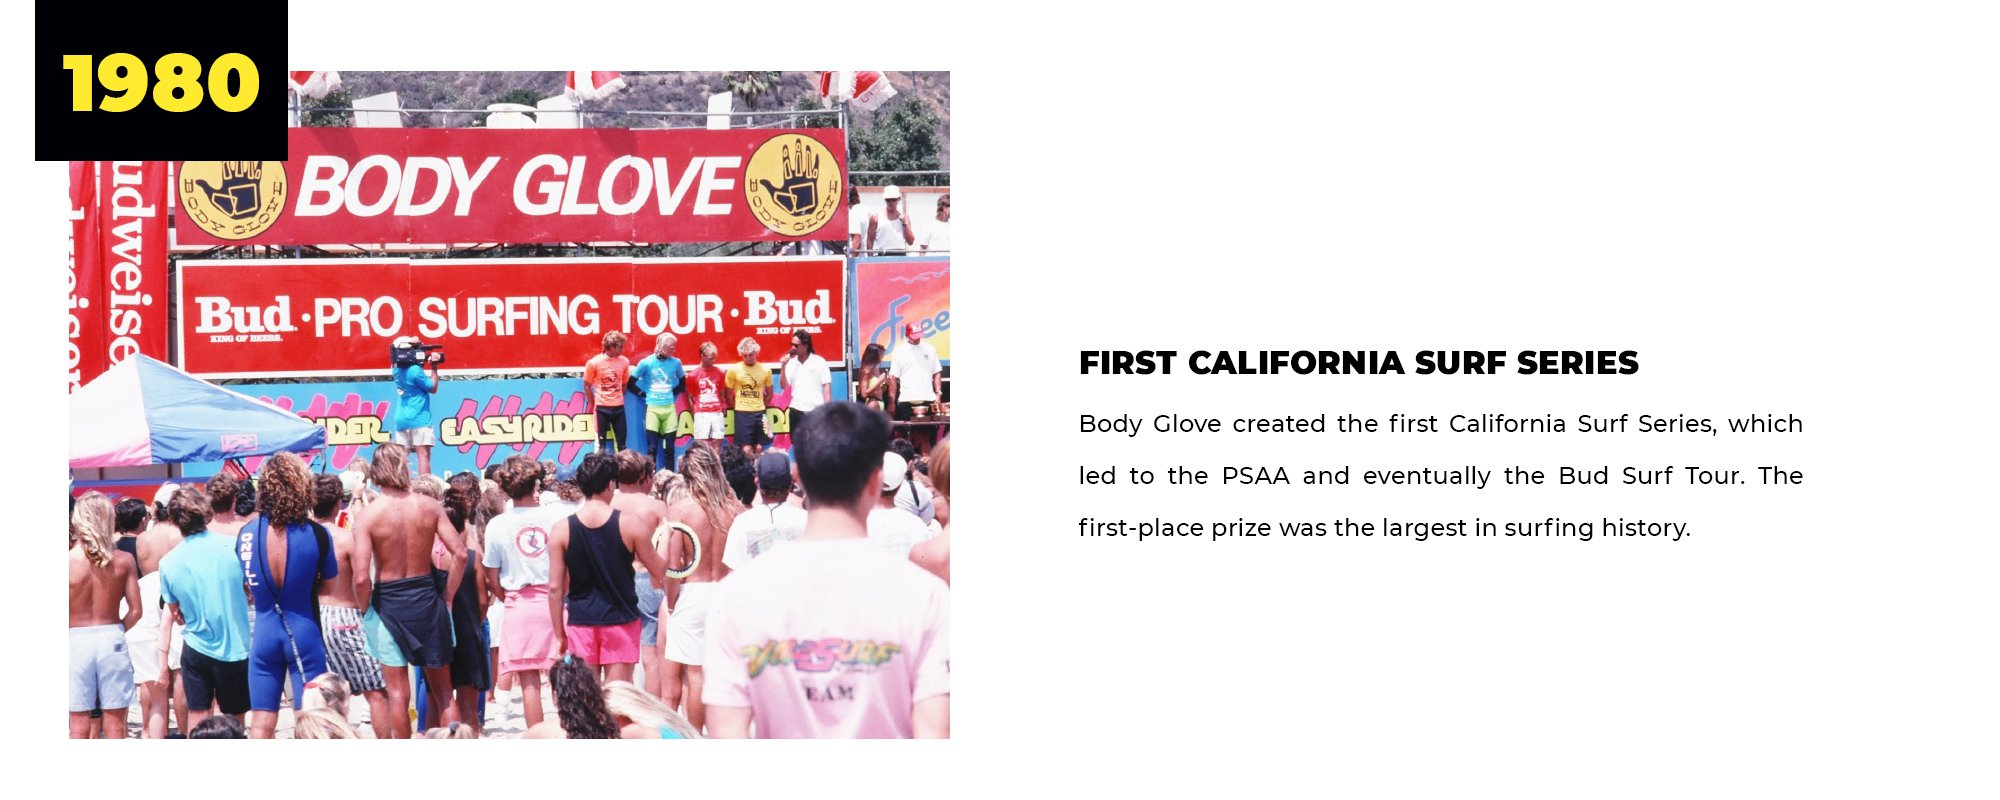 1980 | First California Surf Series | Body Glove created the first California Surf Series, which led to the PSAA and eventually the Bud Surf Tour. The first-place prize was the largest in surfing history.